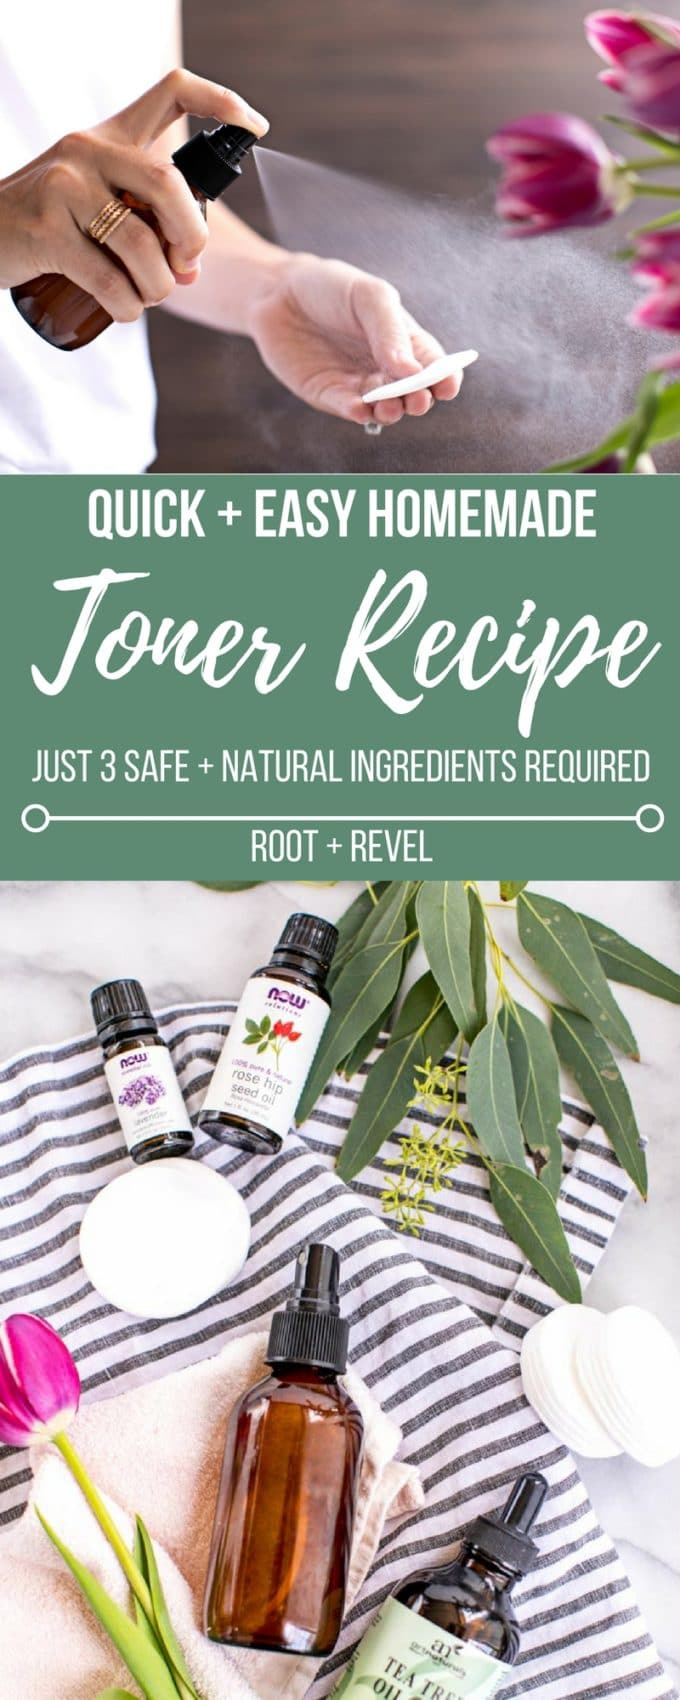 Avoid toxic chemicals + save money with quick + easy DIY Skincare. This Homemade Toner is just 3 ingredients to soothe, clean + refresh your skin!